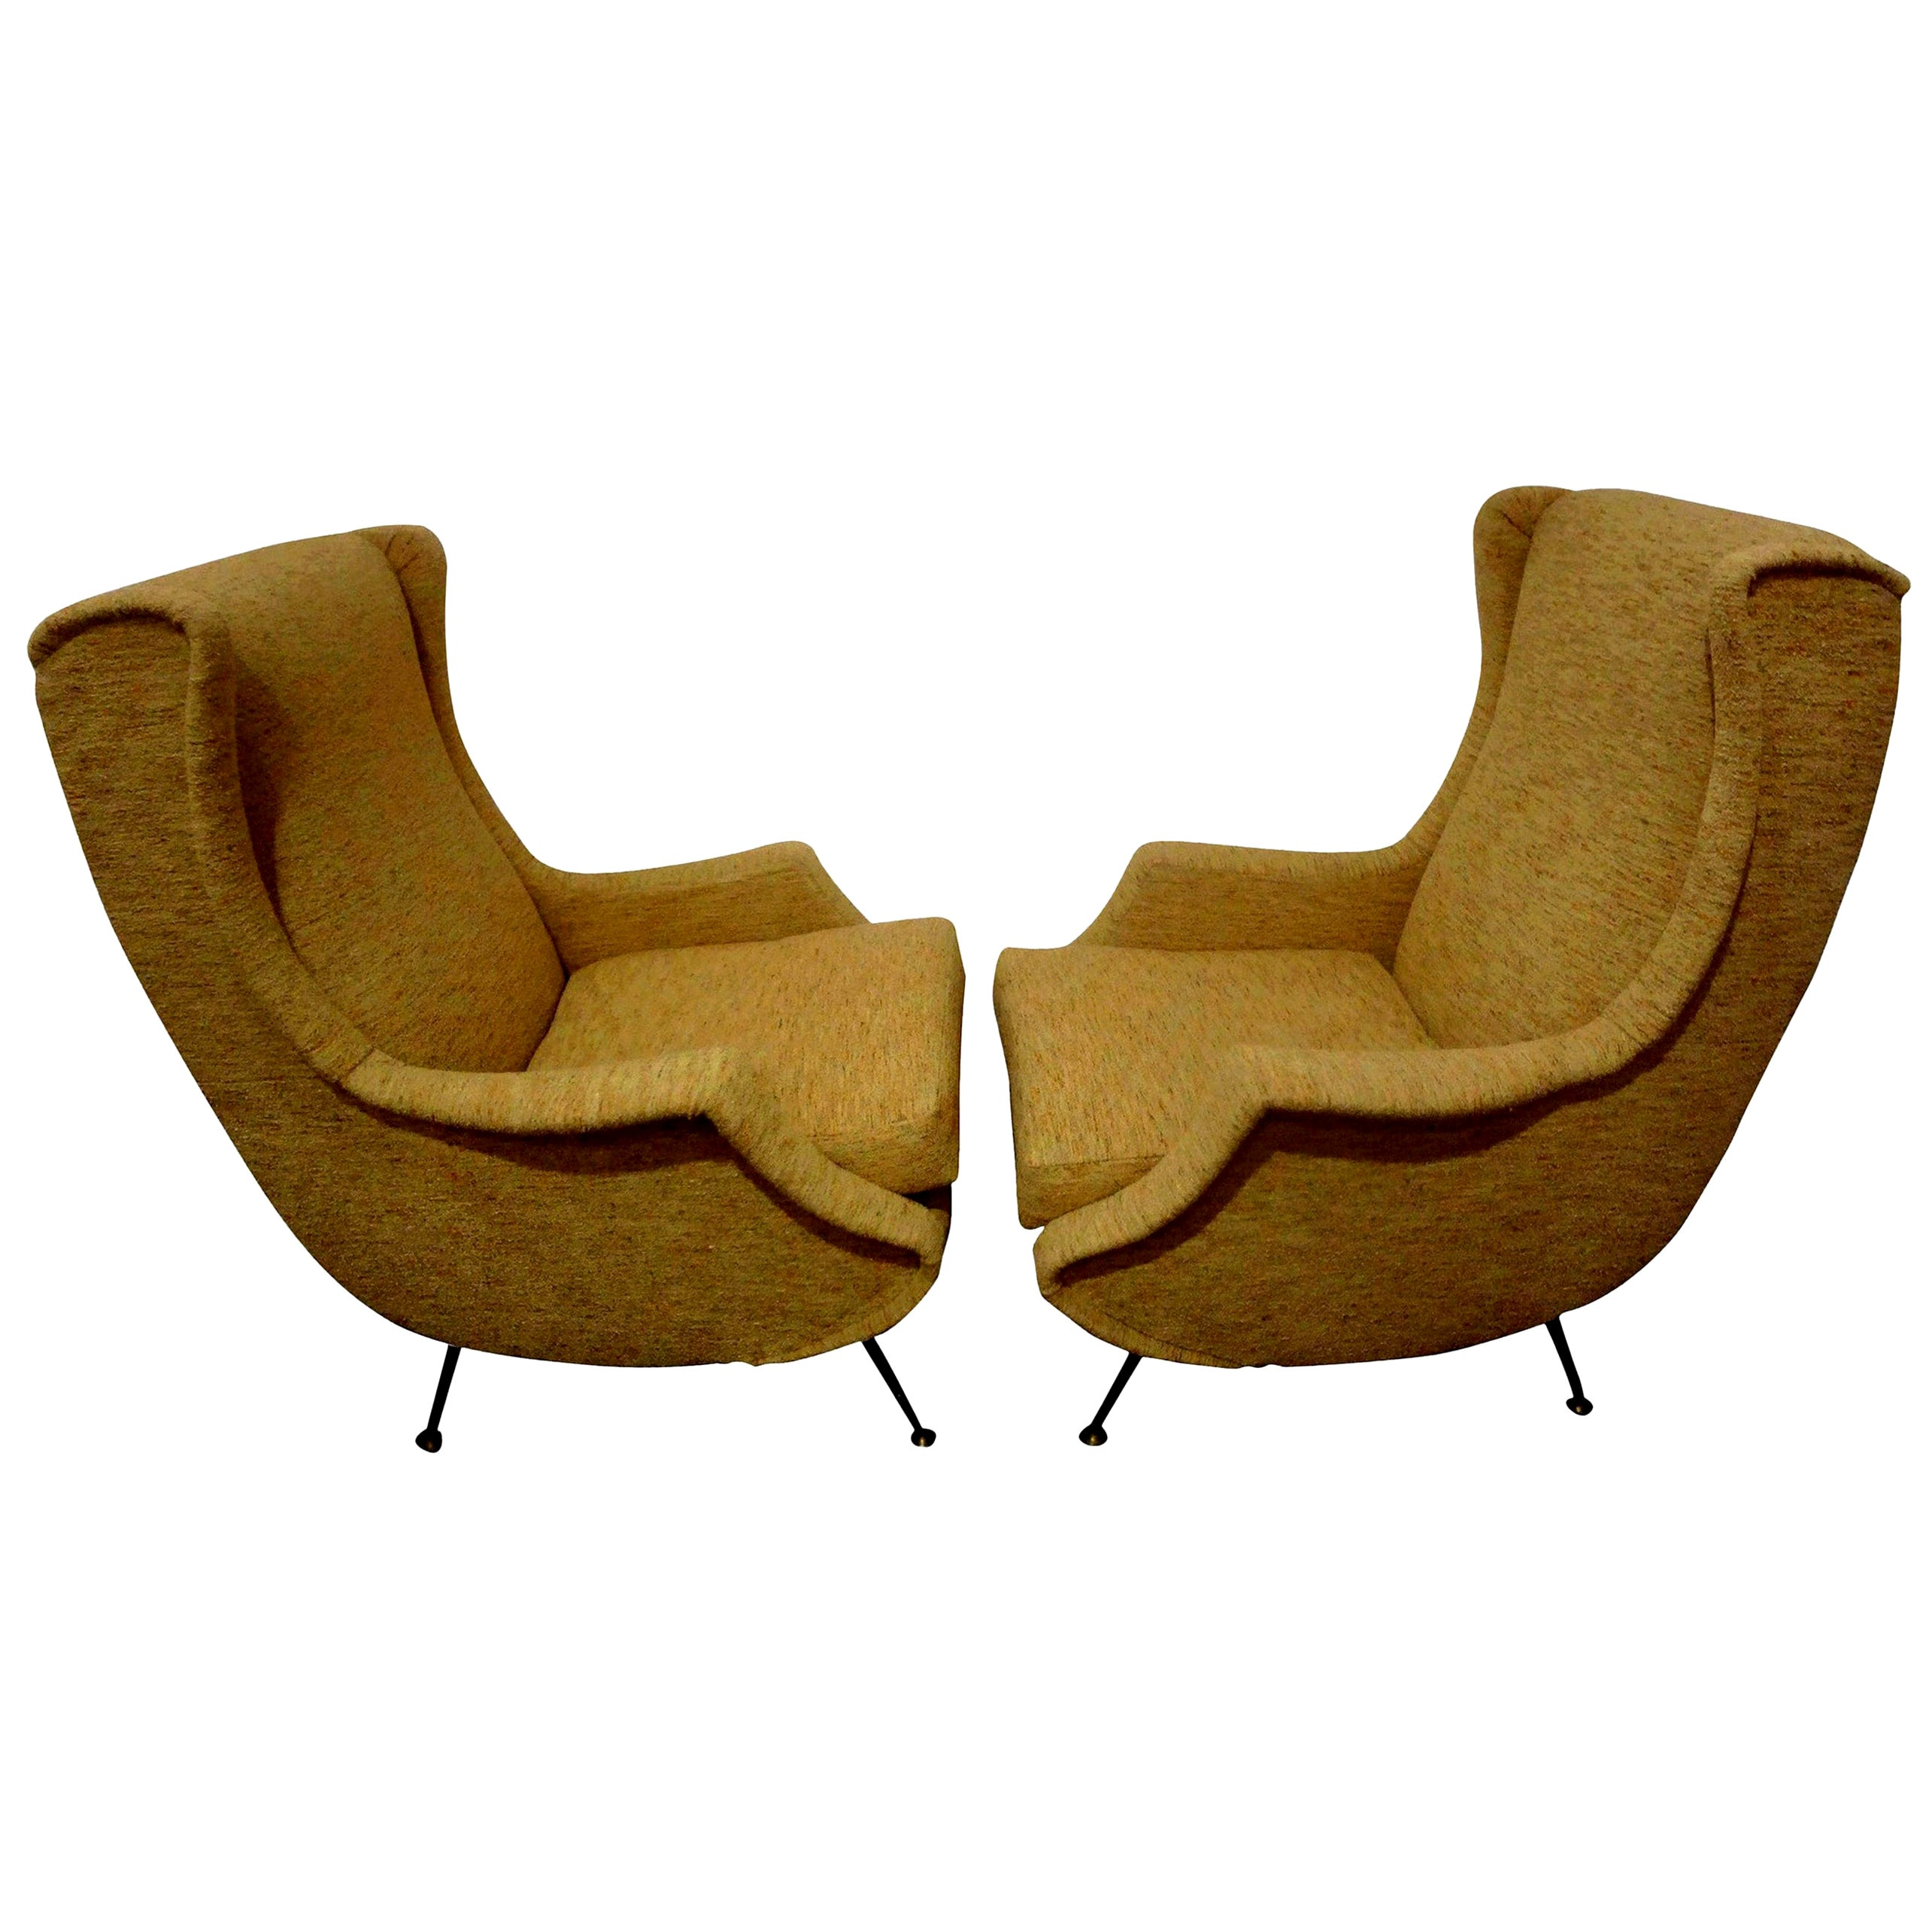 Pair of Italian Midcentury Lounge Chairs Inspired by Minotti